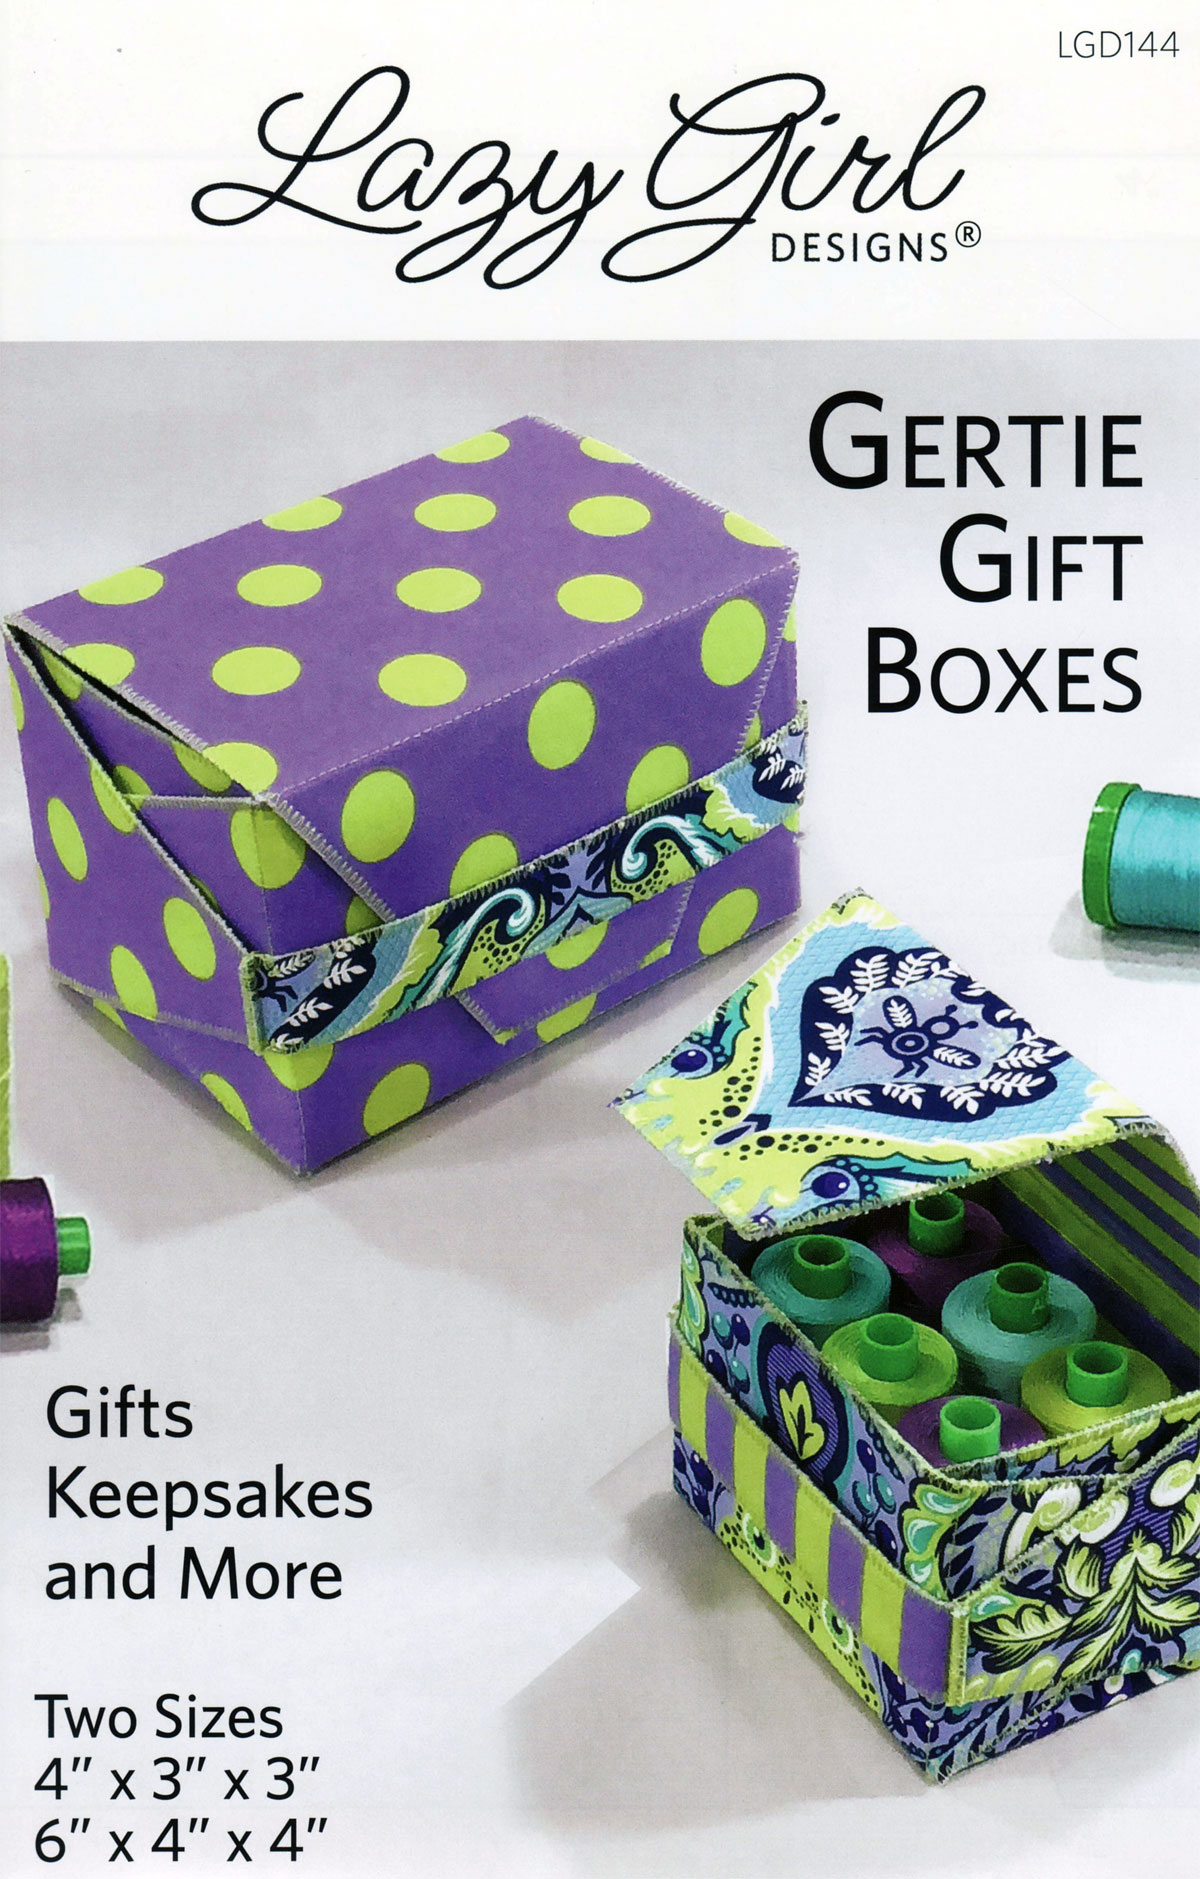 Gertie-Gift-Boxes-sewing-pattern-Lazy-Girl-Designs-front